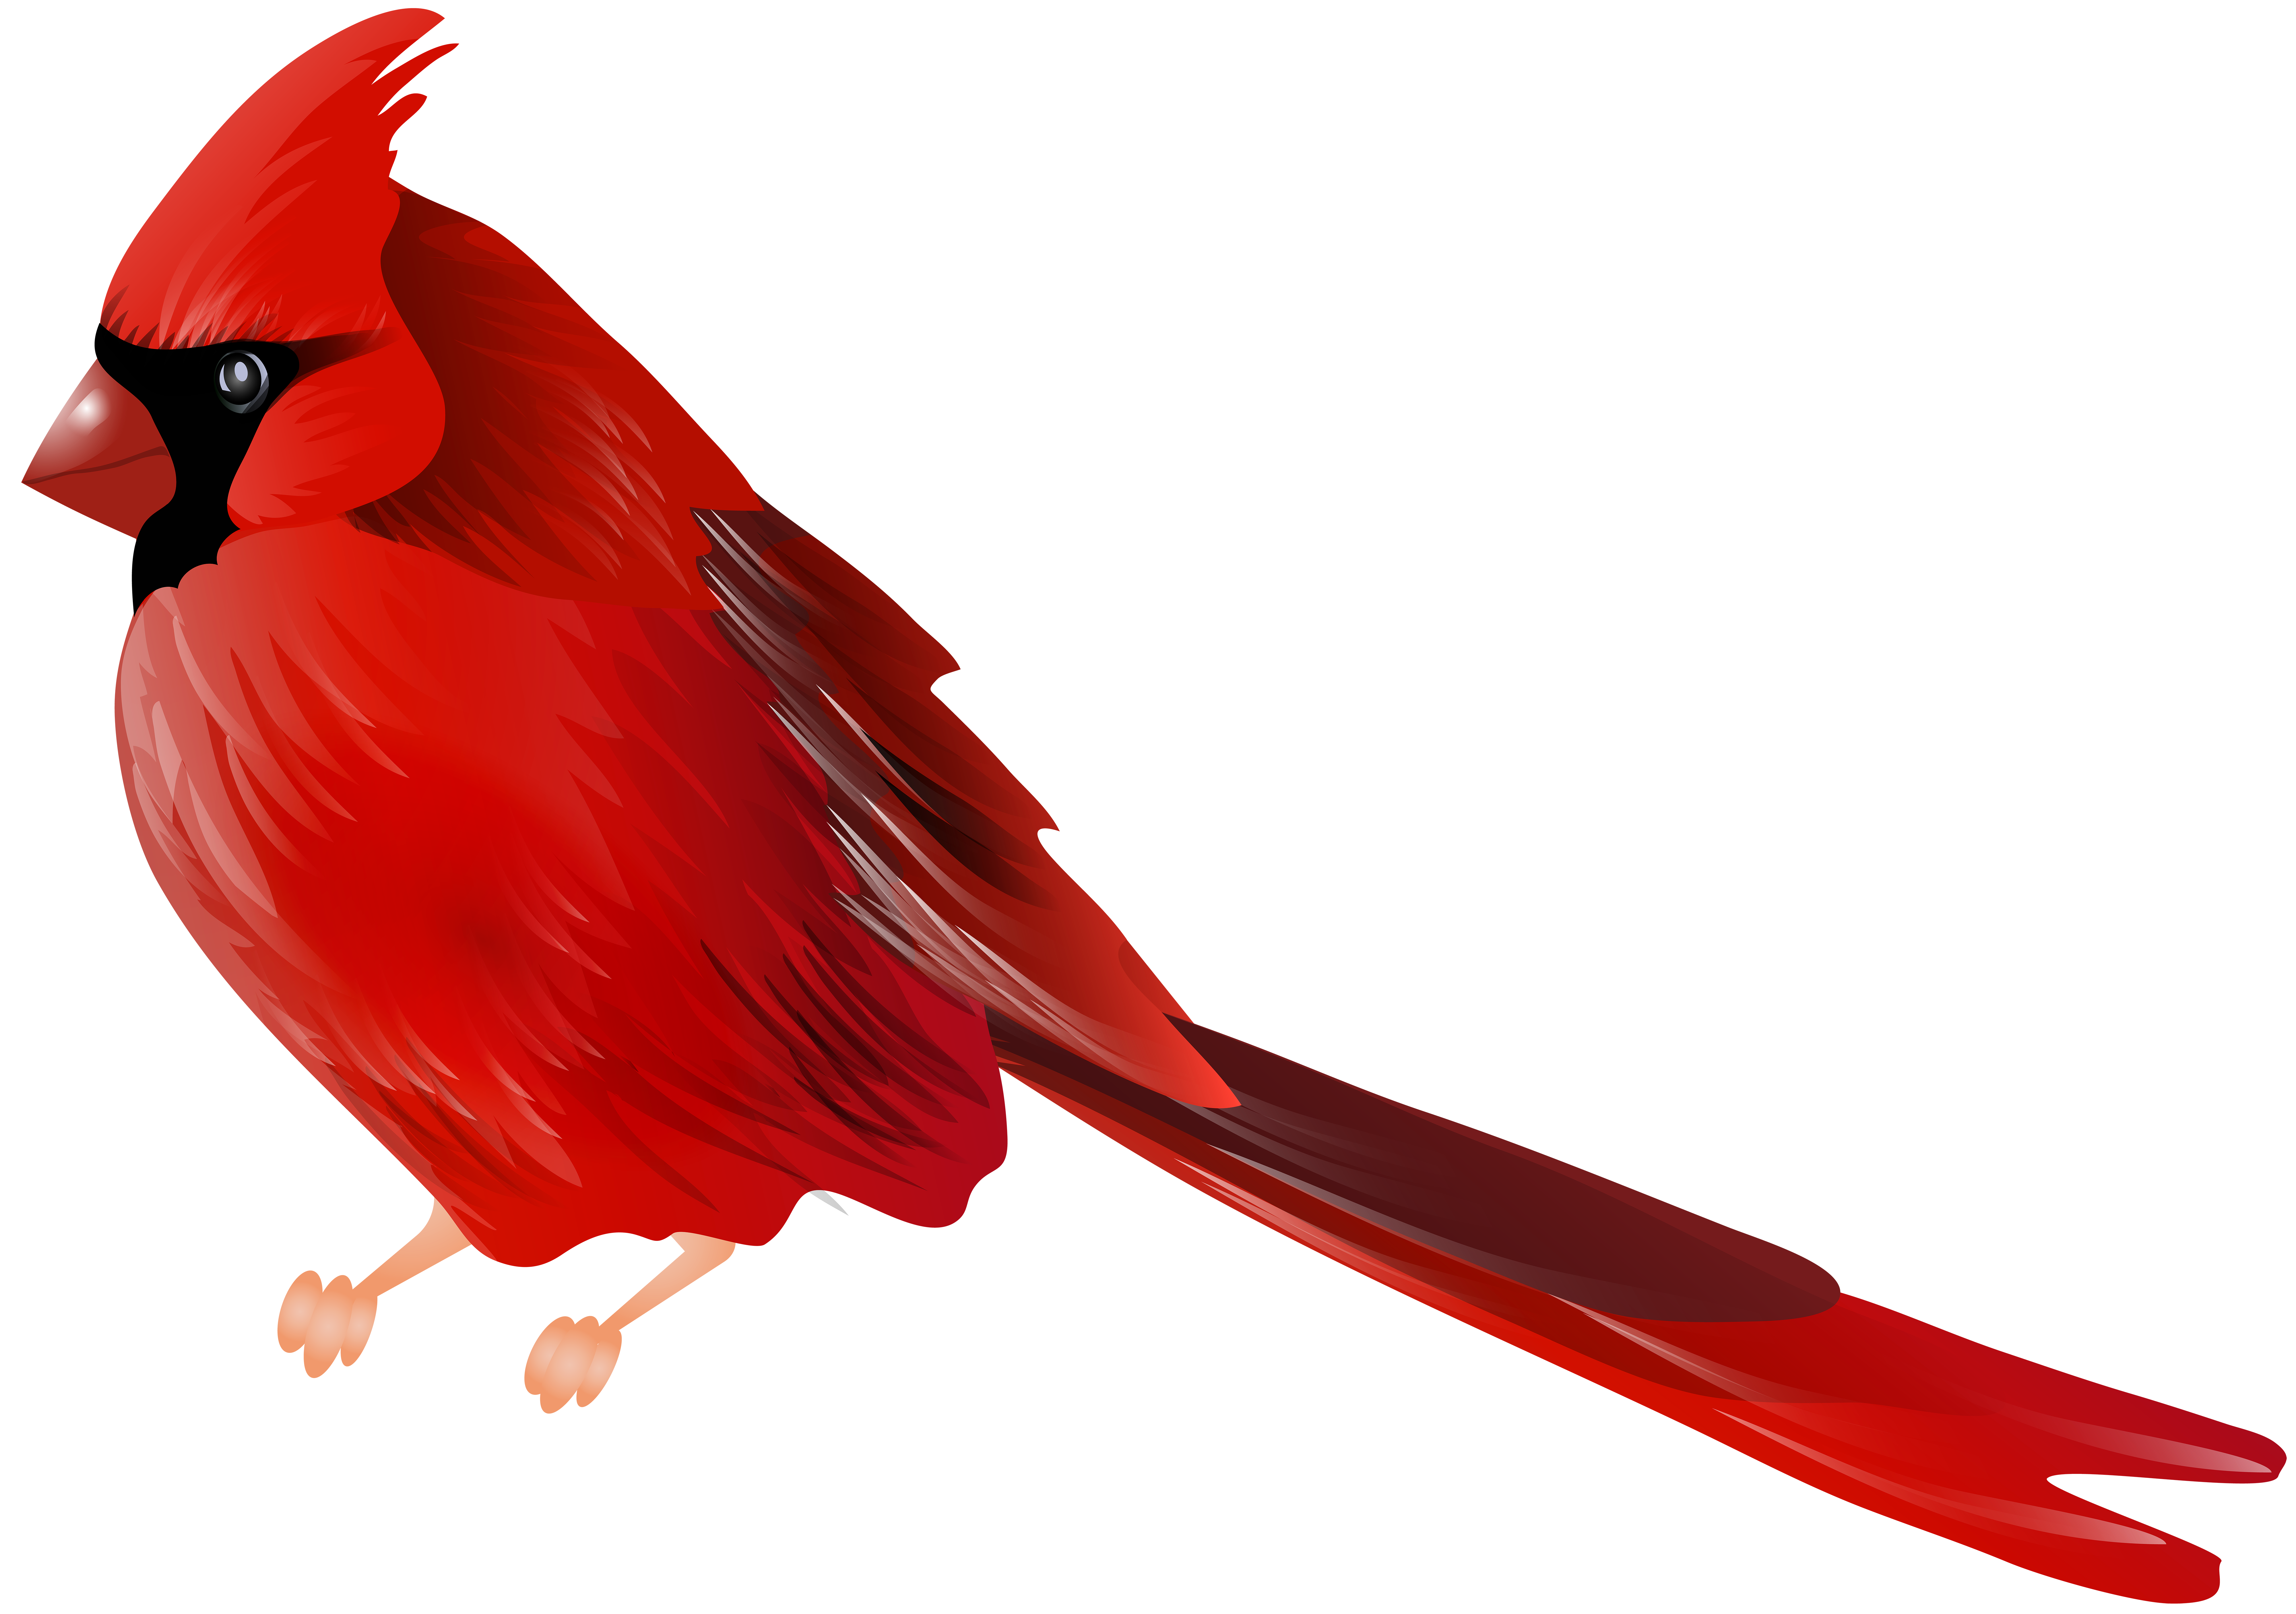 Cardinals clipart jpg transparent download Cardinals clip art clipart images gallery for free download | MyReal jpg transparent download